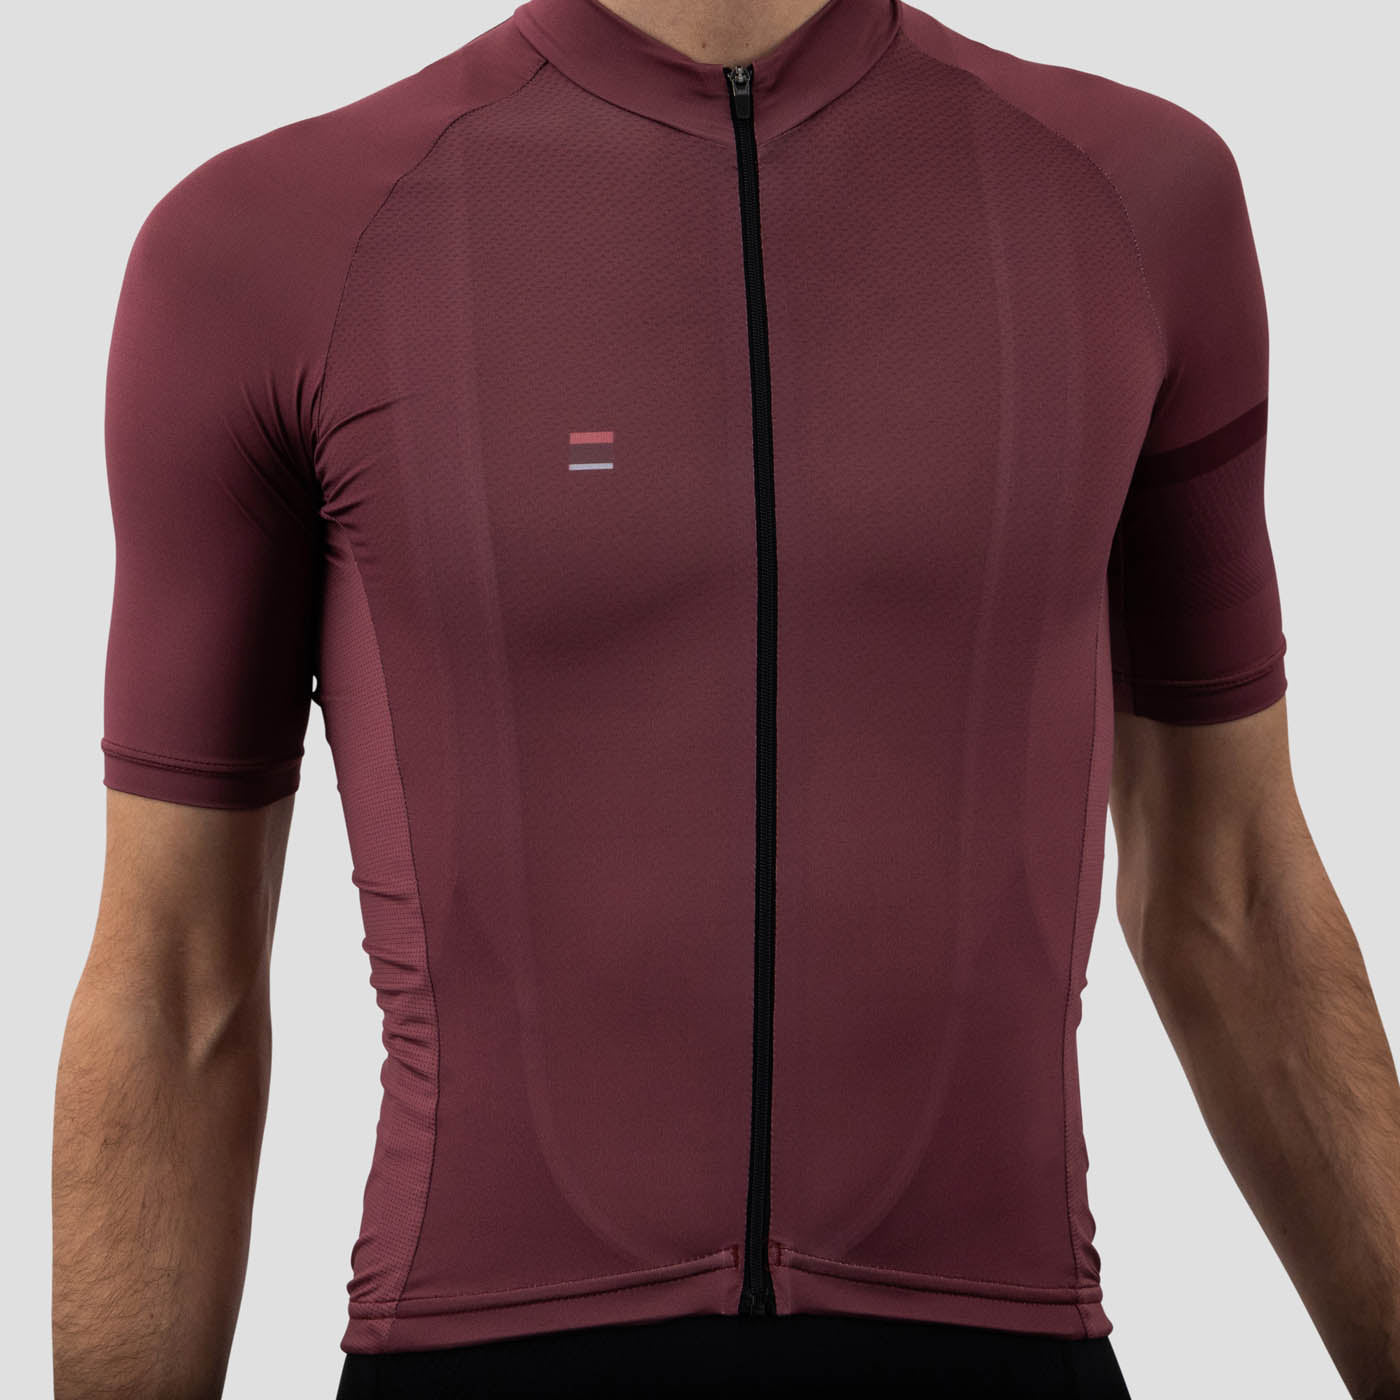 House Jersey - Coastal Burgundy